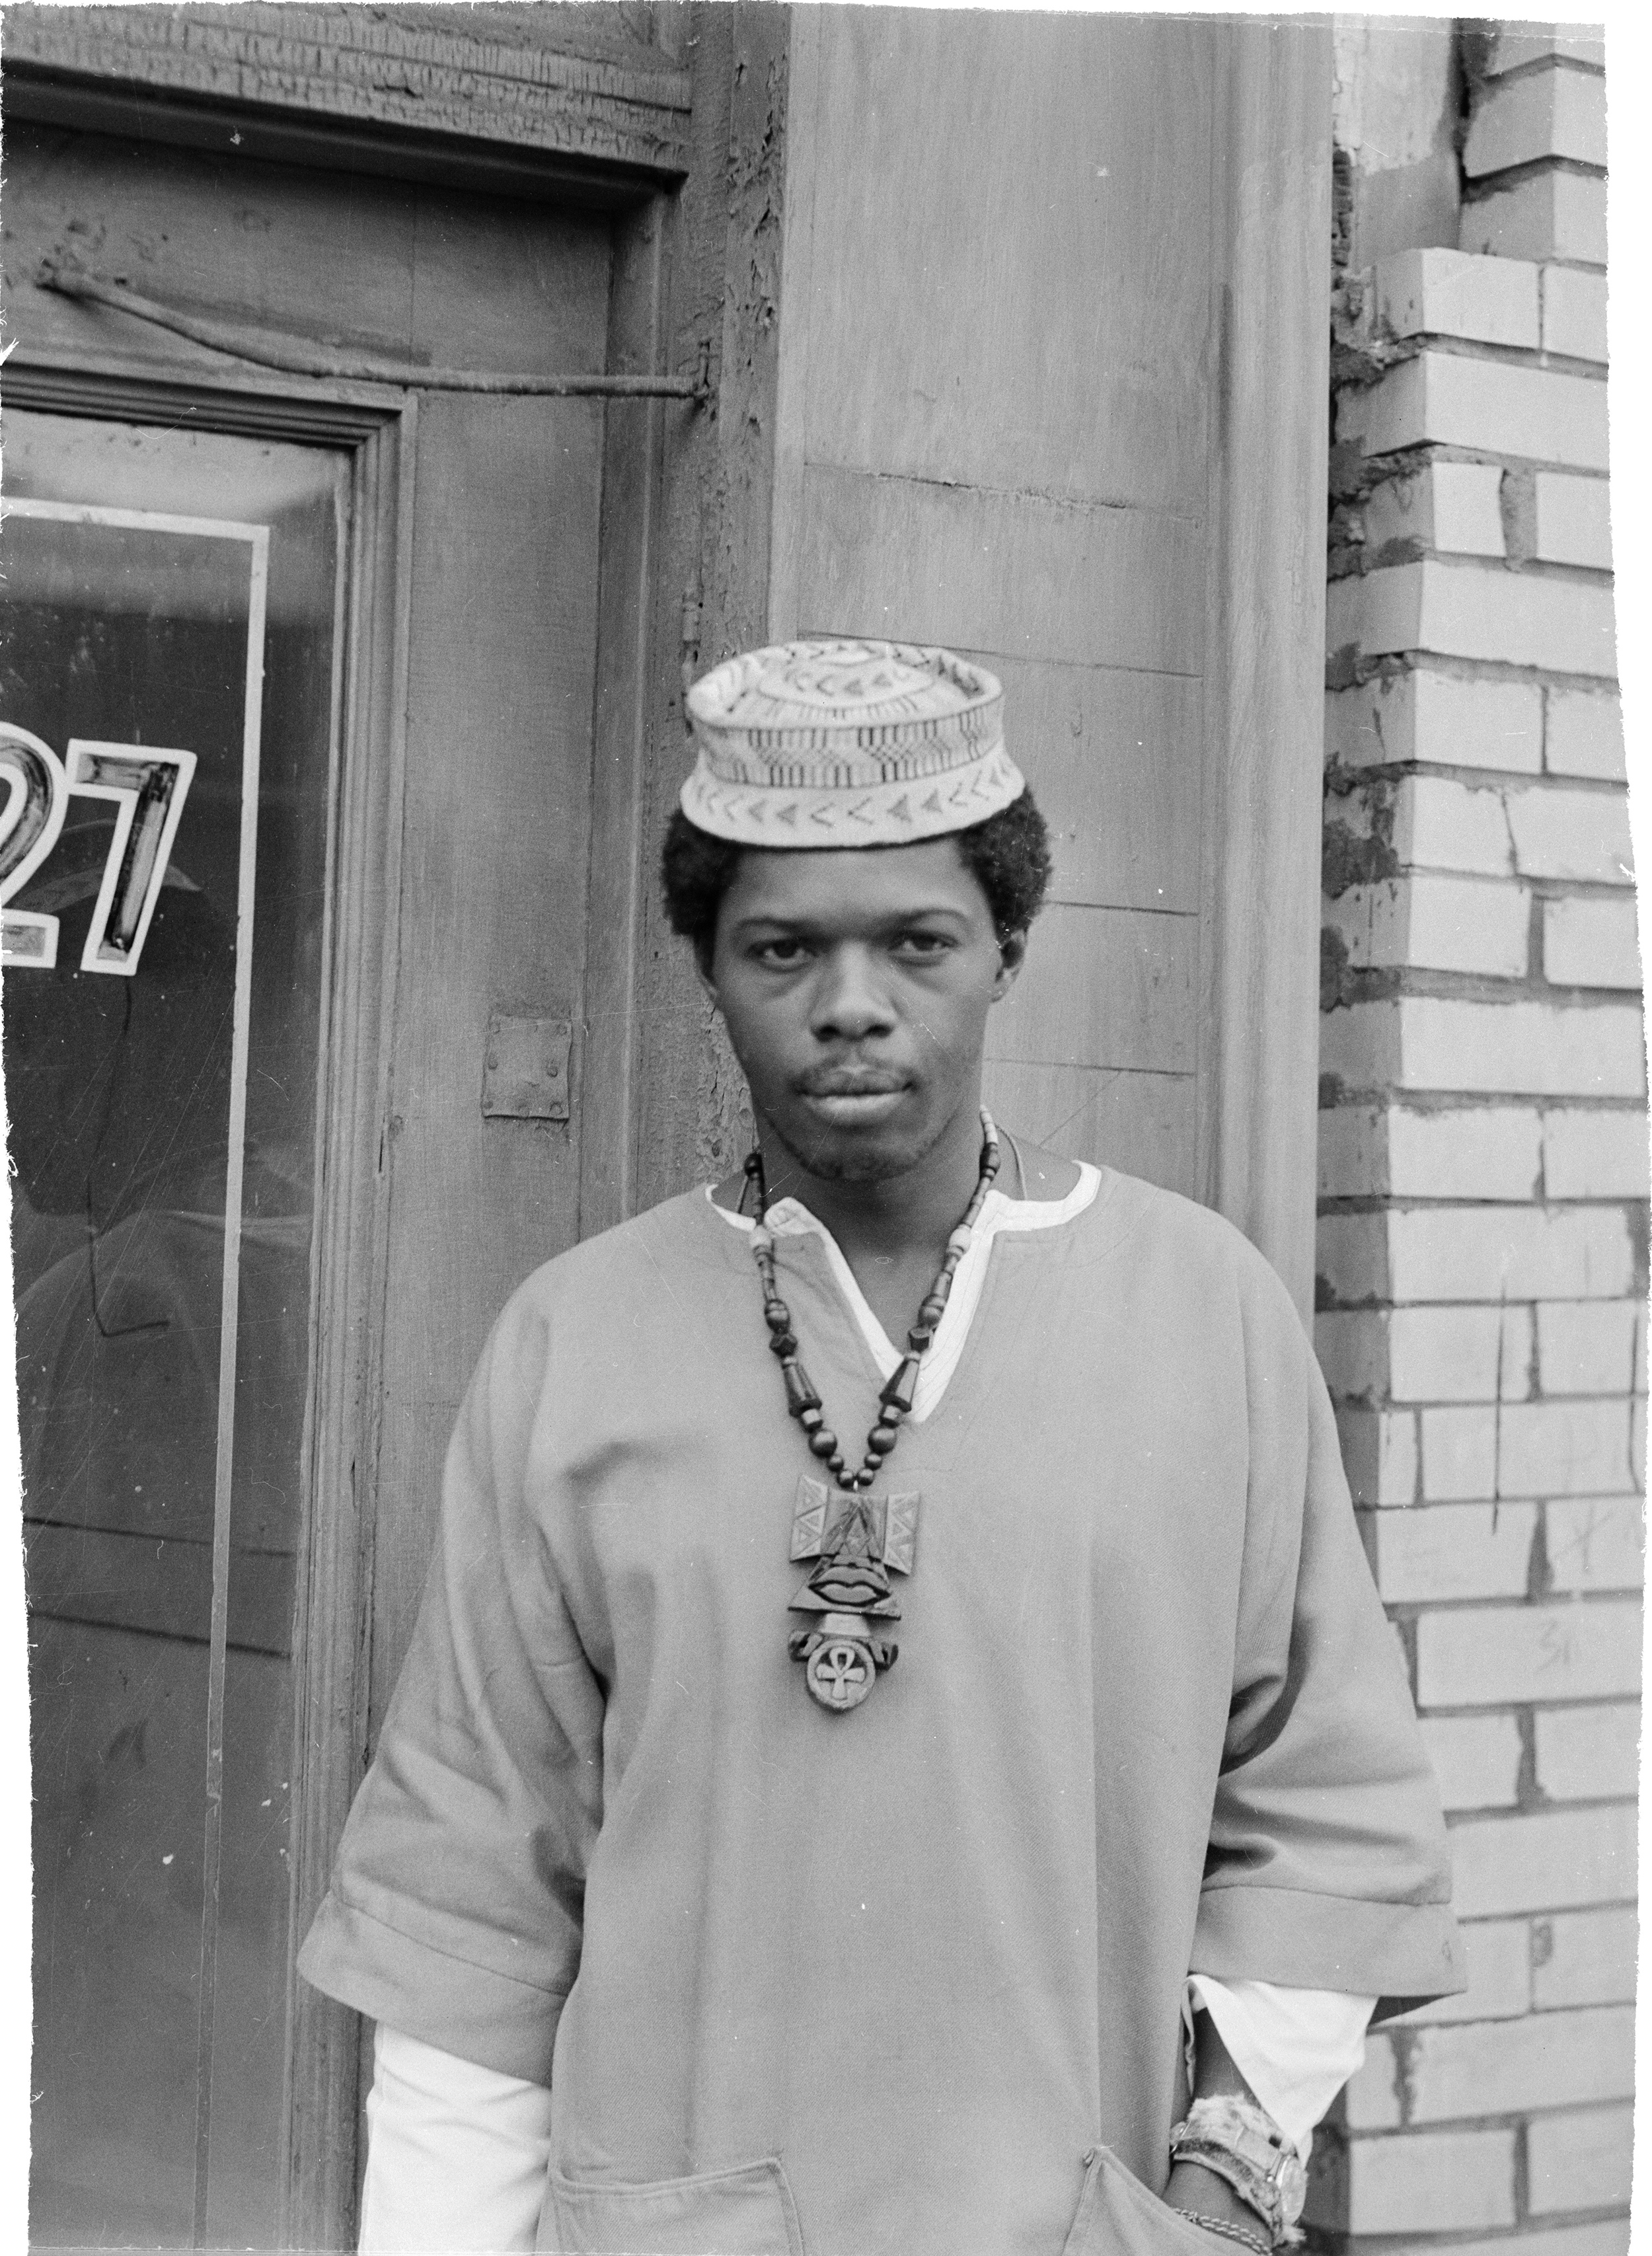 A portrait of Sala Udin in the Hill District c. September 1970. (Photo by Charles 'Teenie' Harris/Carnegie Museum of Art via Getty Images)